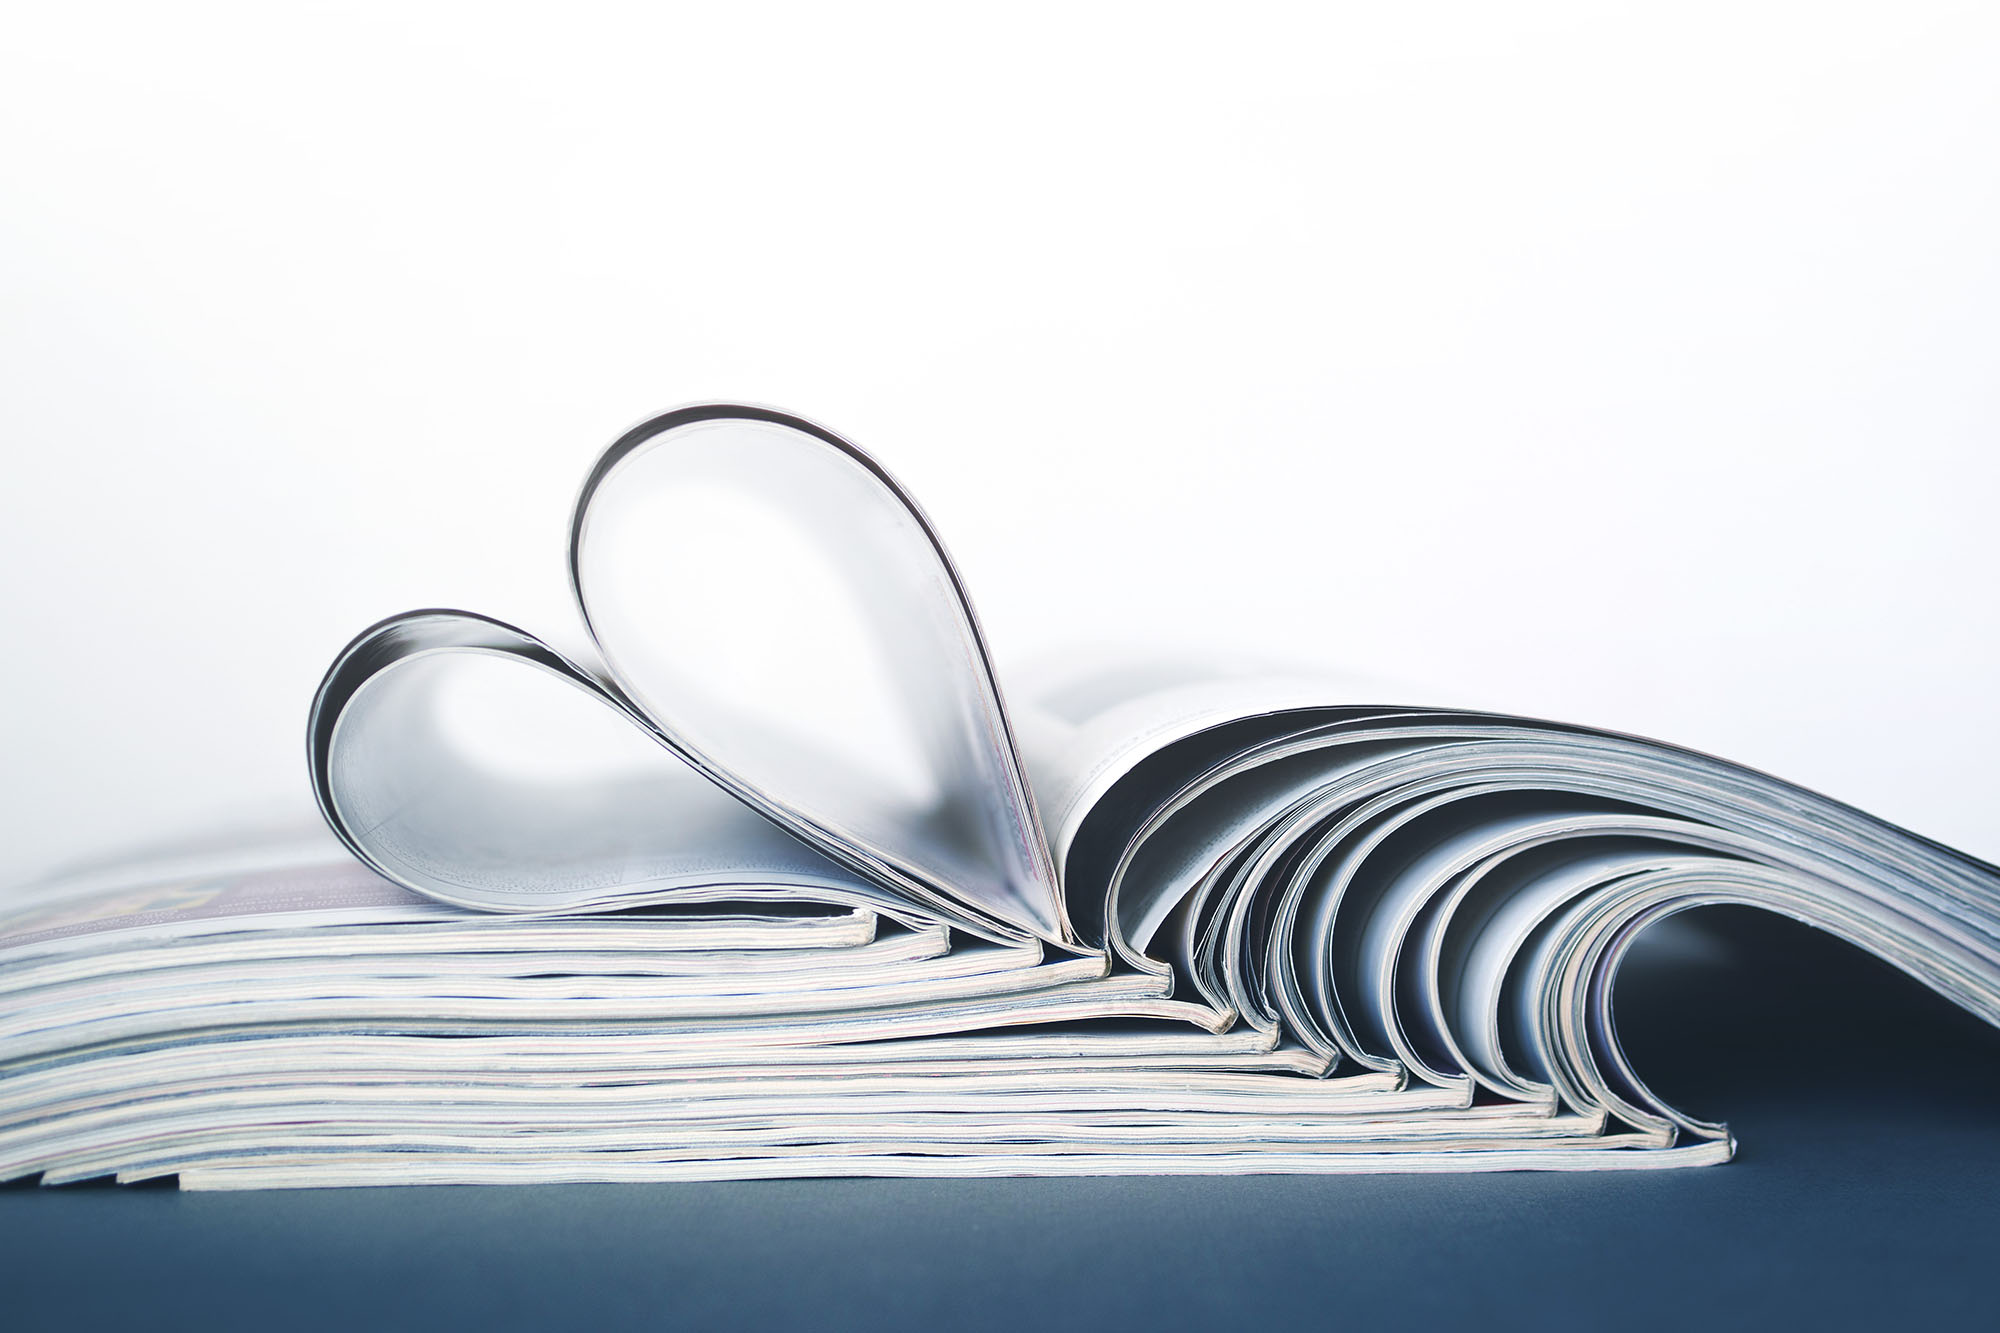 Magazines give all writers a voice